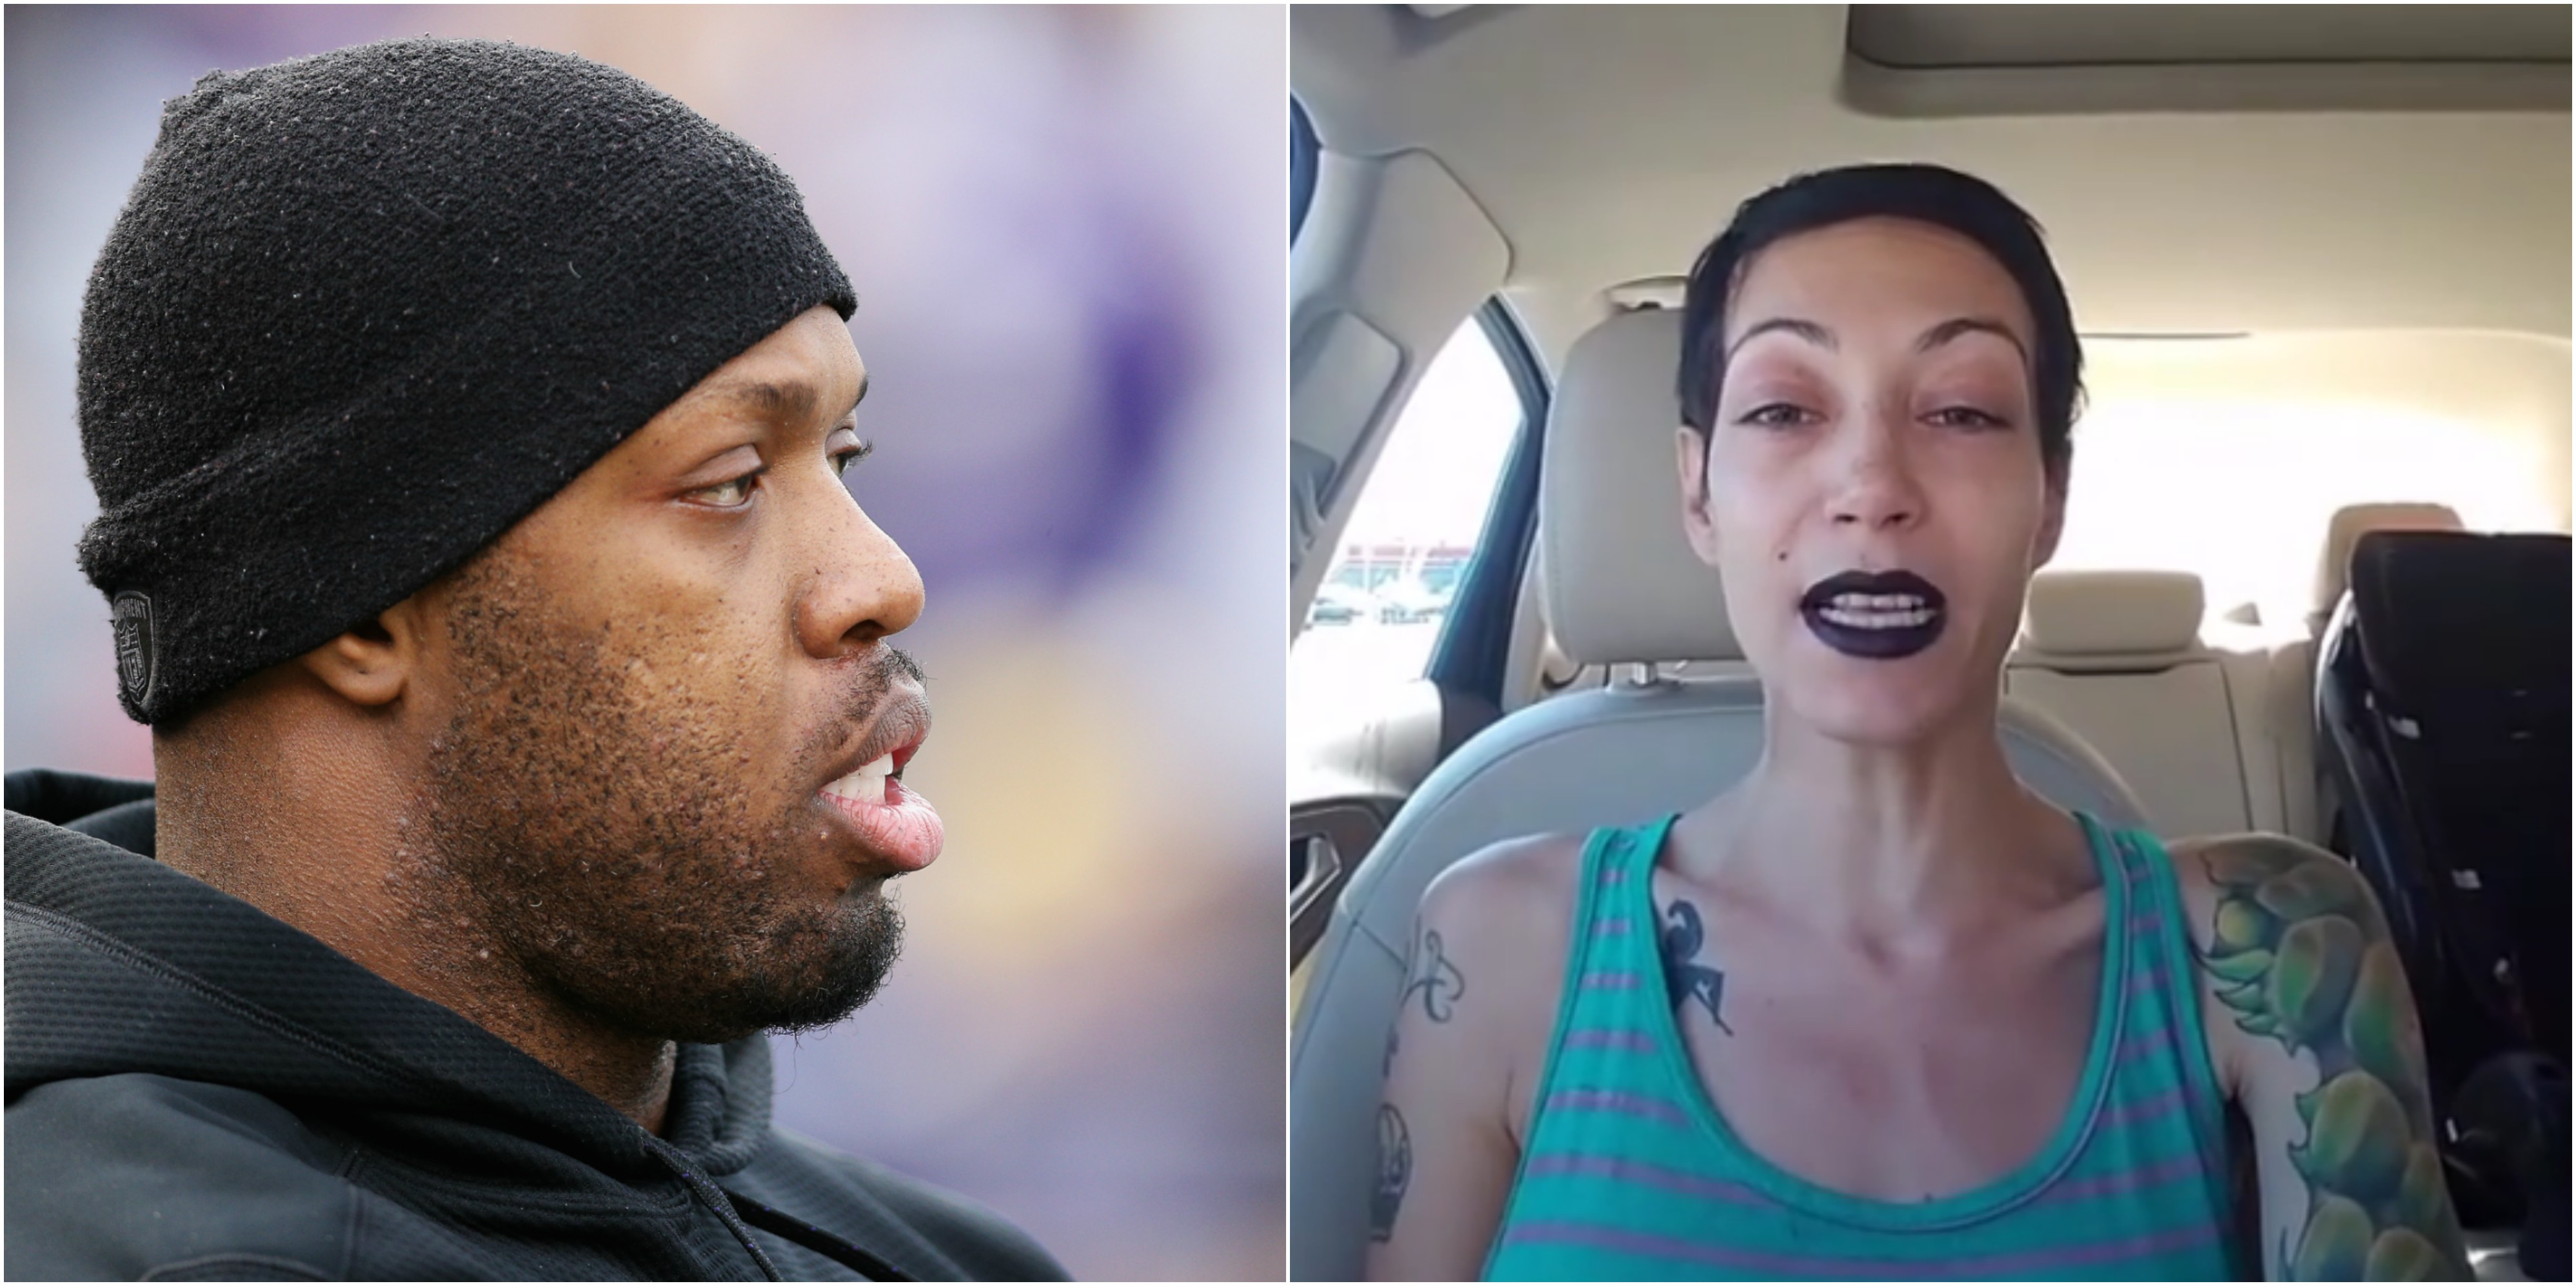 Terrell Suggs Ex Wife Goes on Rant About Him Not Taking Care of